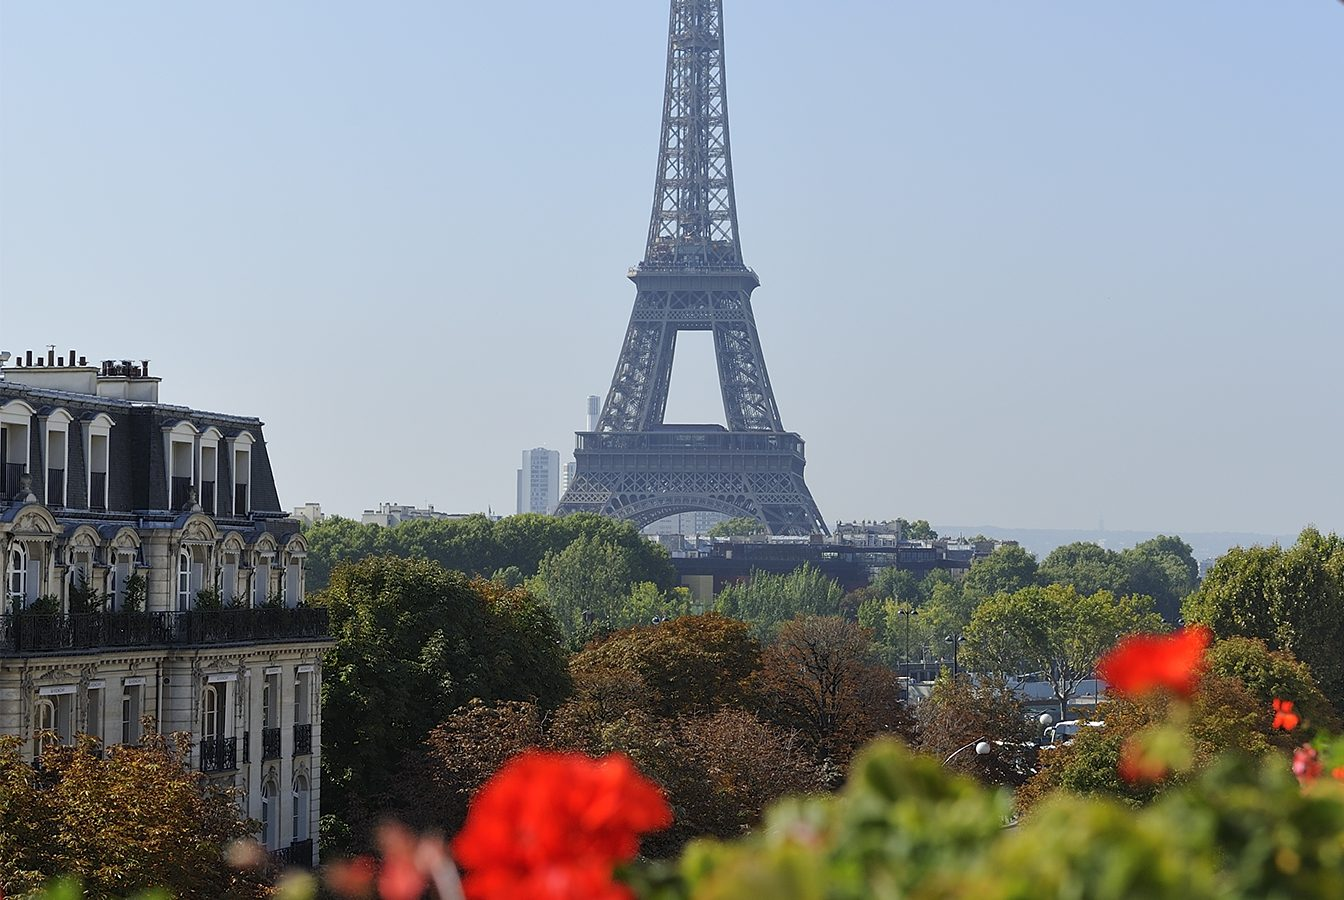 this image shows the view from Hotel Plaza Athénée on the Eiffel tower